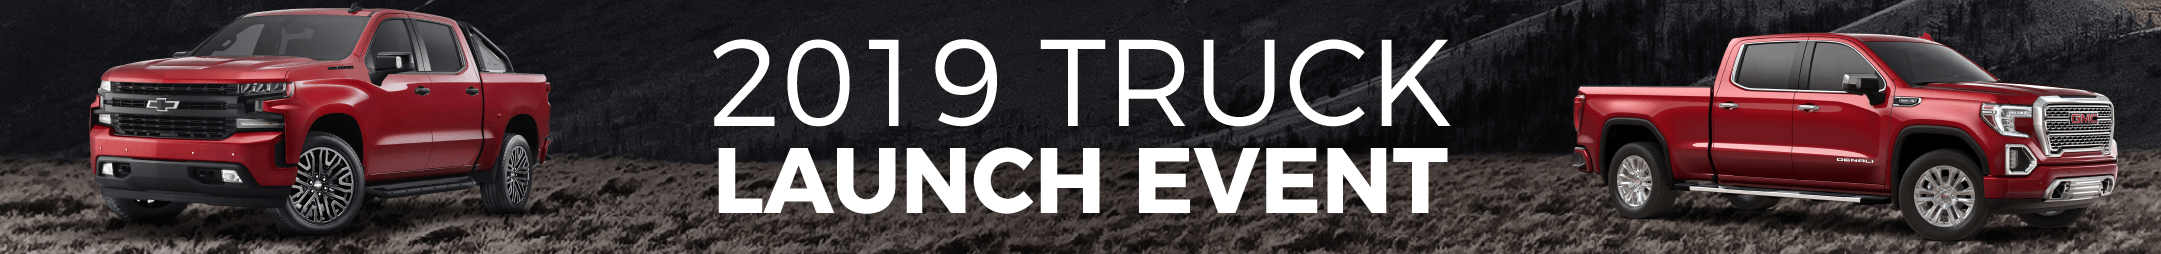 2019 Truck Launch Event